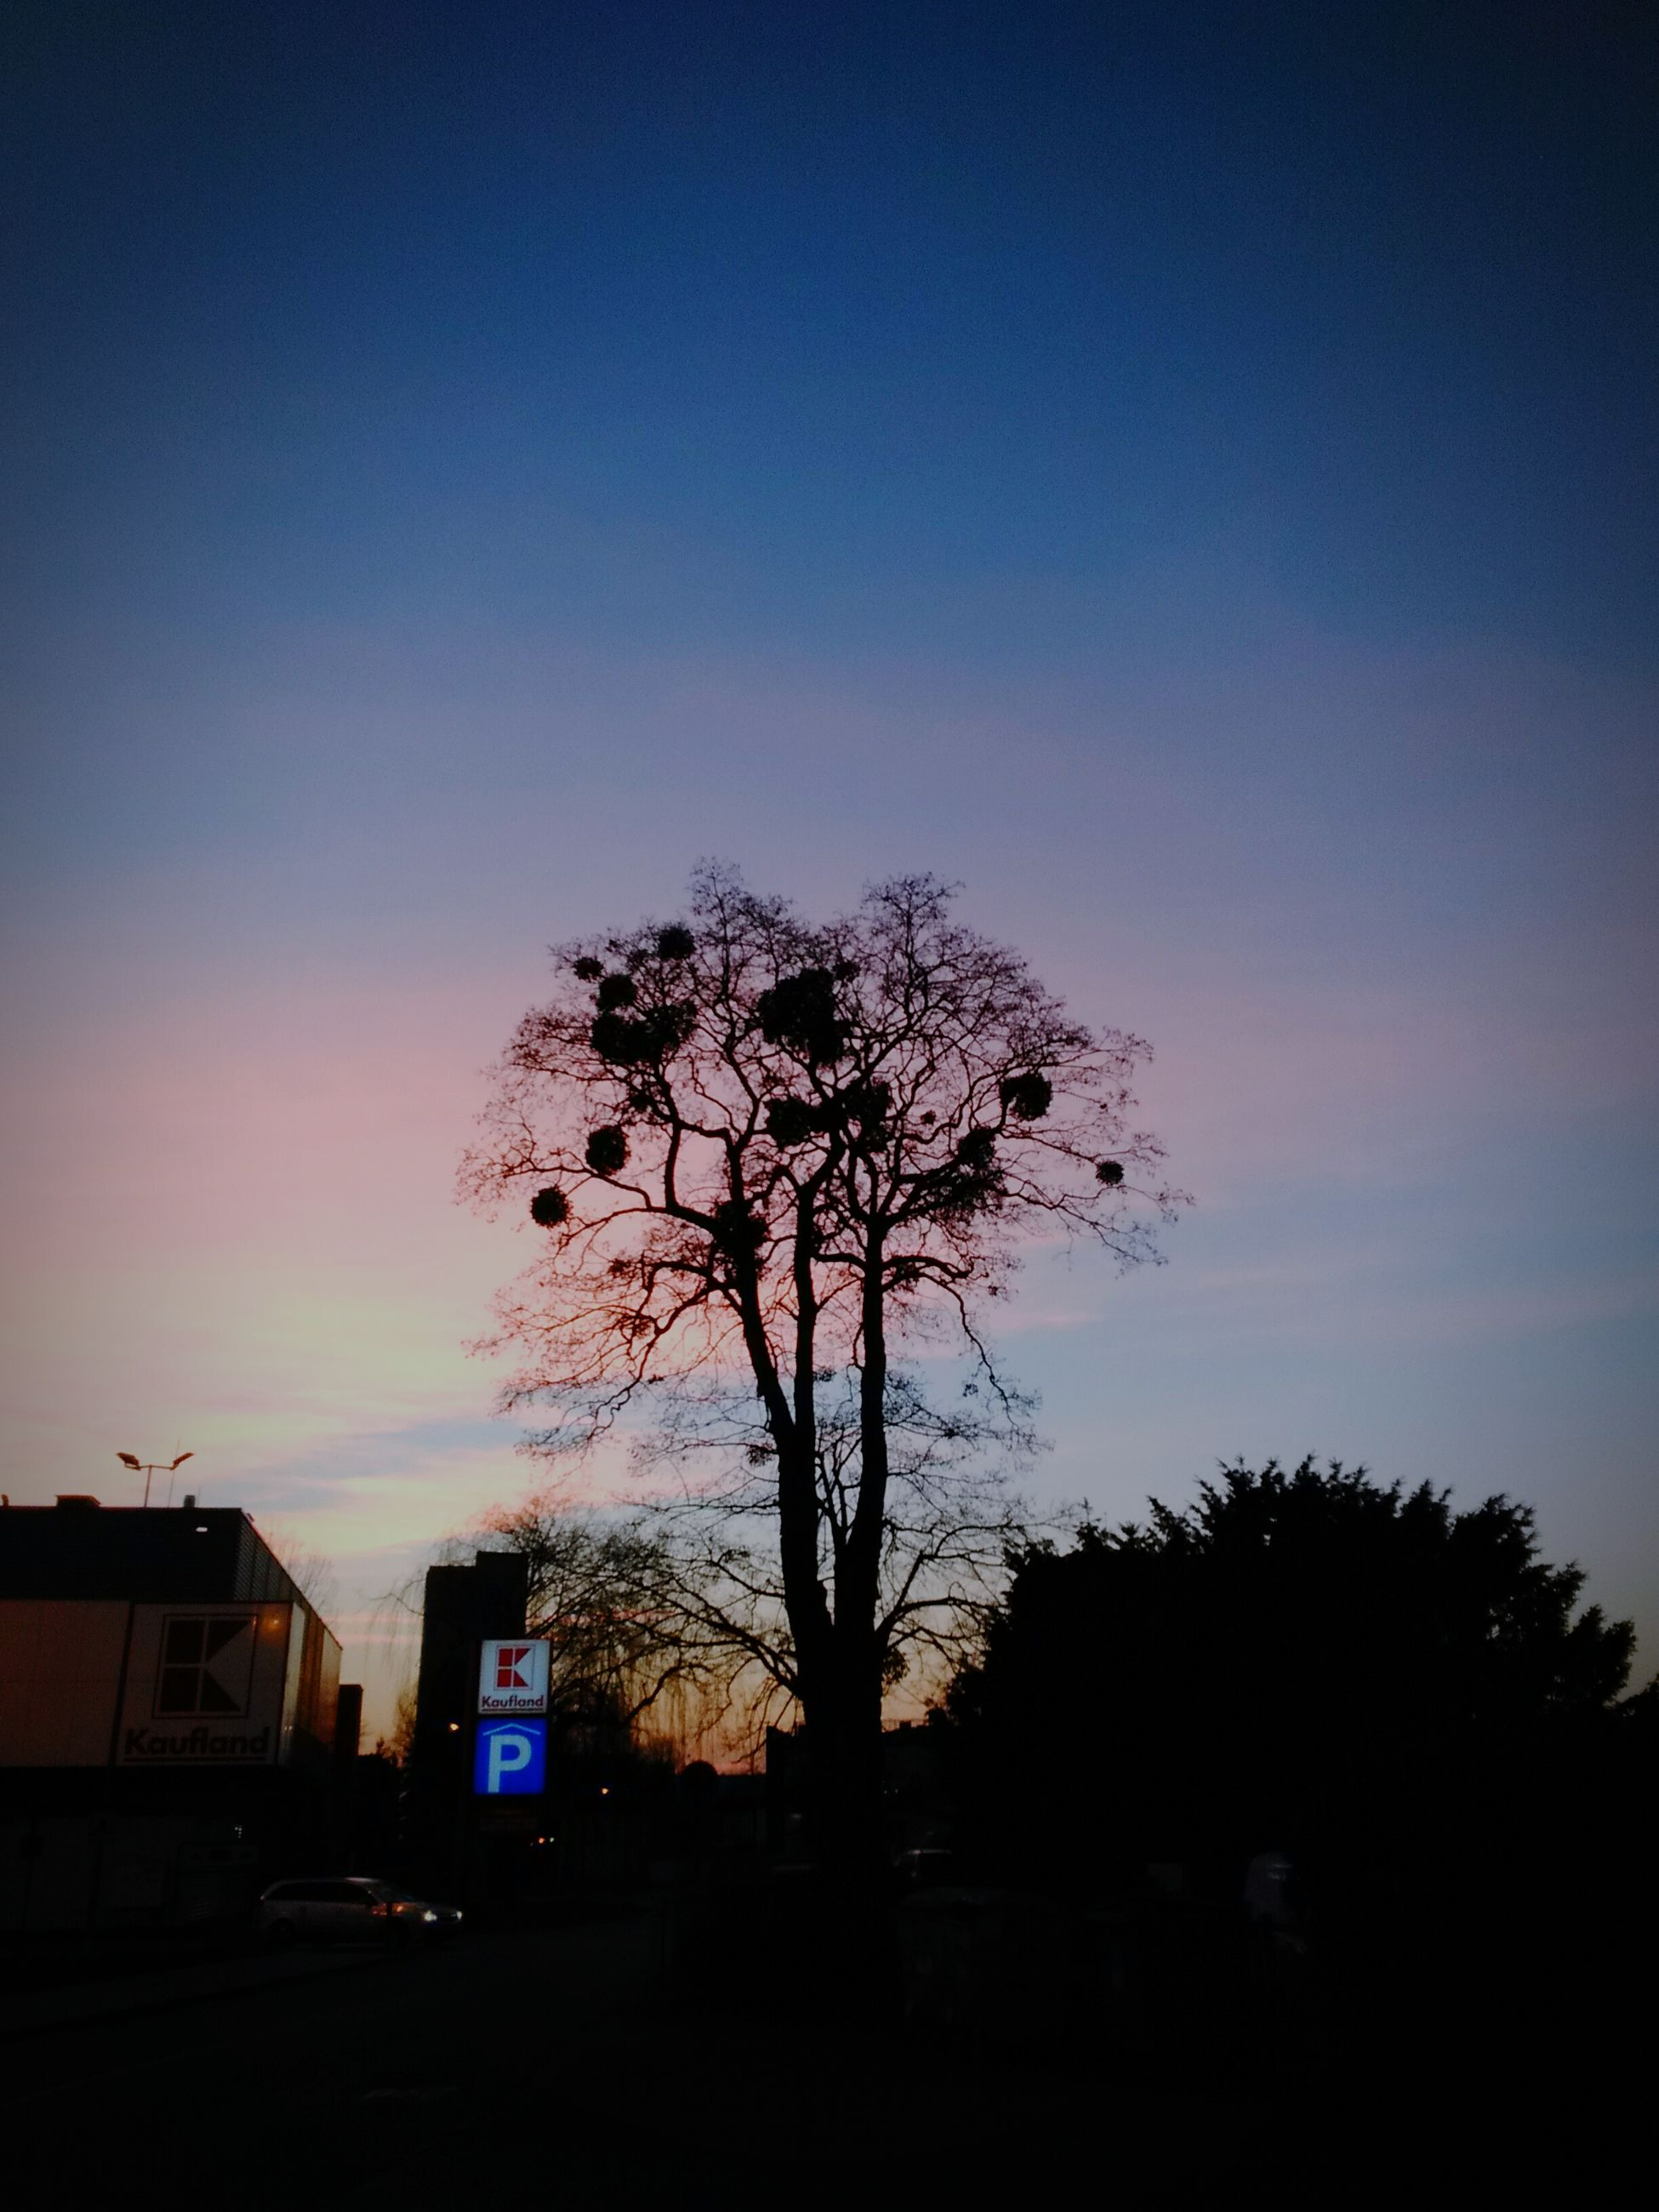 silhouette, tree, sunset, bare tree, sky, building exterior, built structure, dusk, architecture, nature, beauty in nature, tranquility, branch, scenics, tranquil scene, outdoors, house, low angle view, dark, copy space